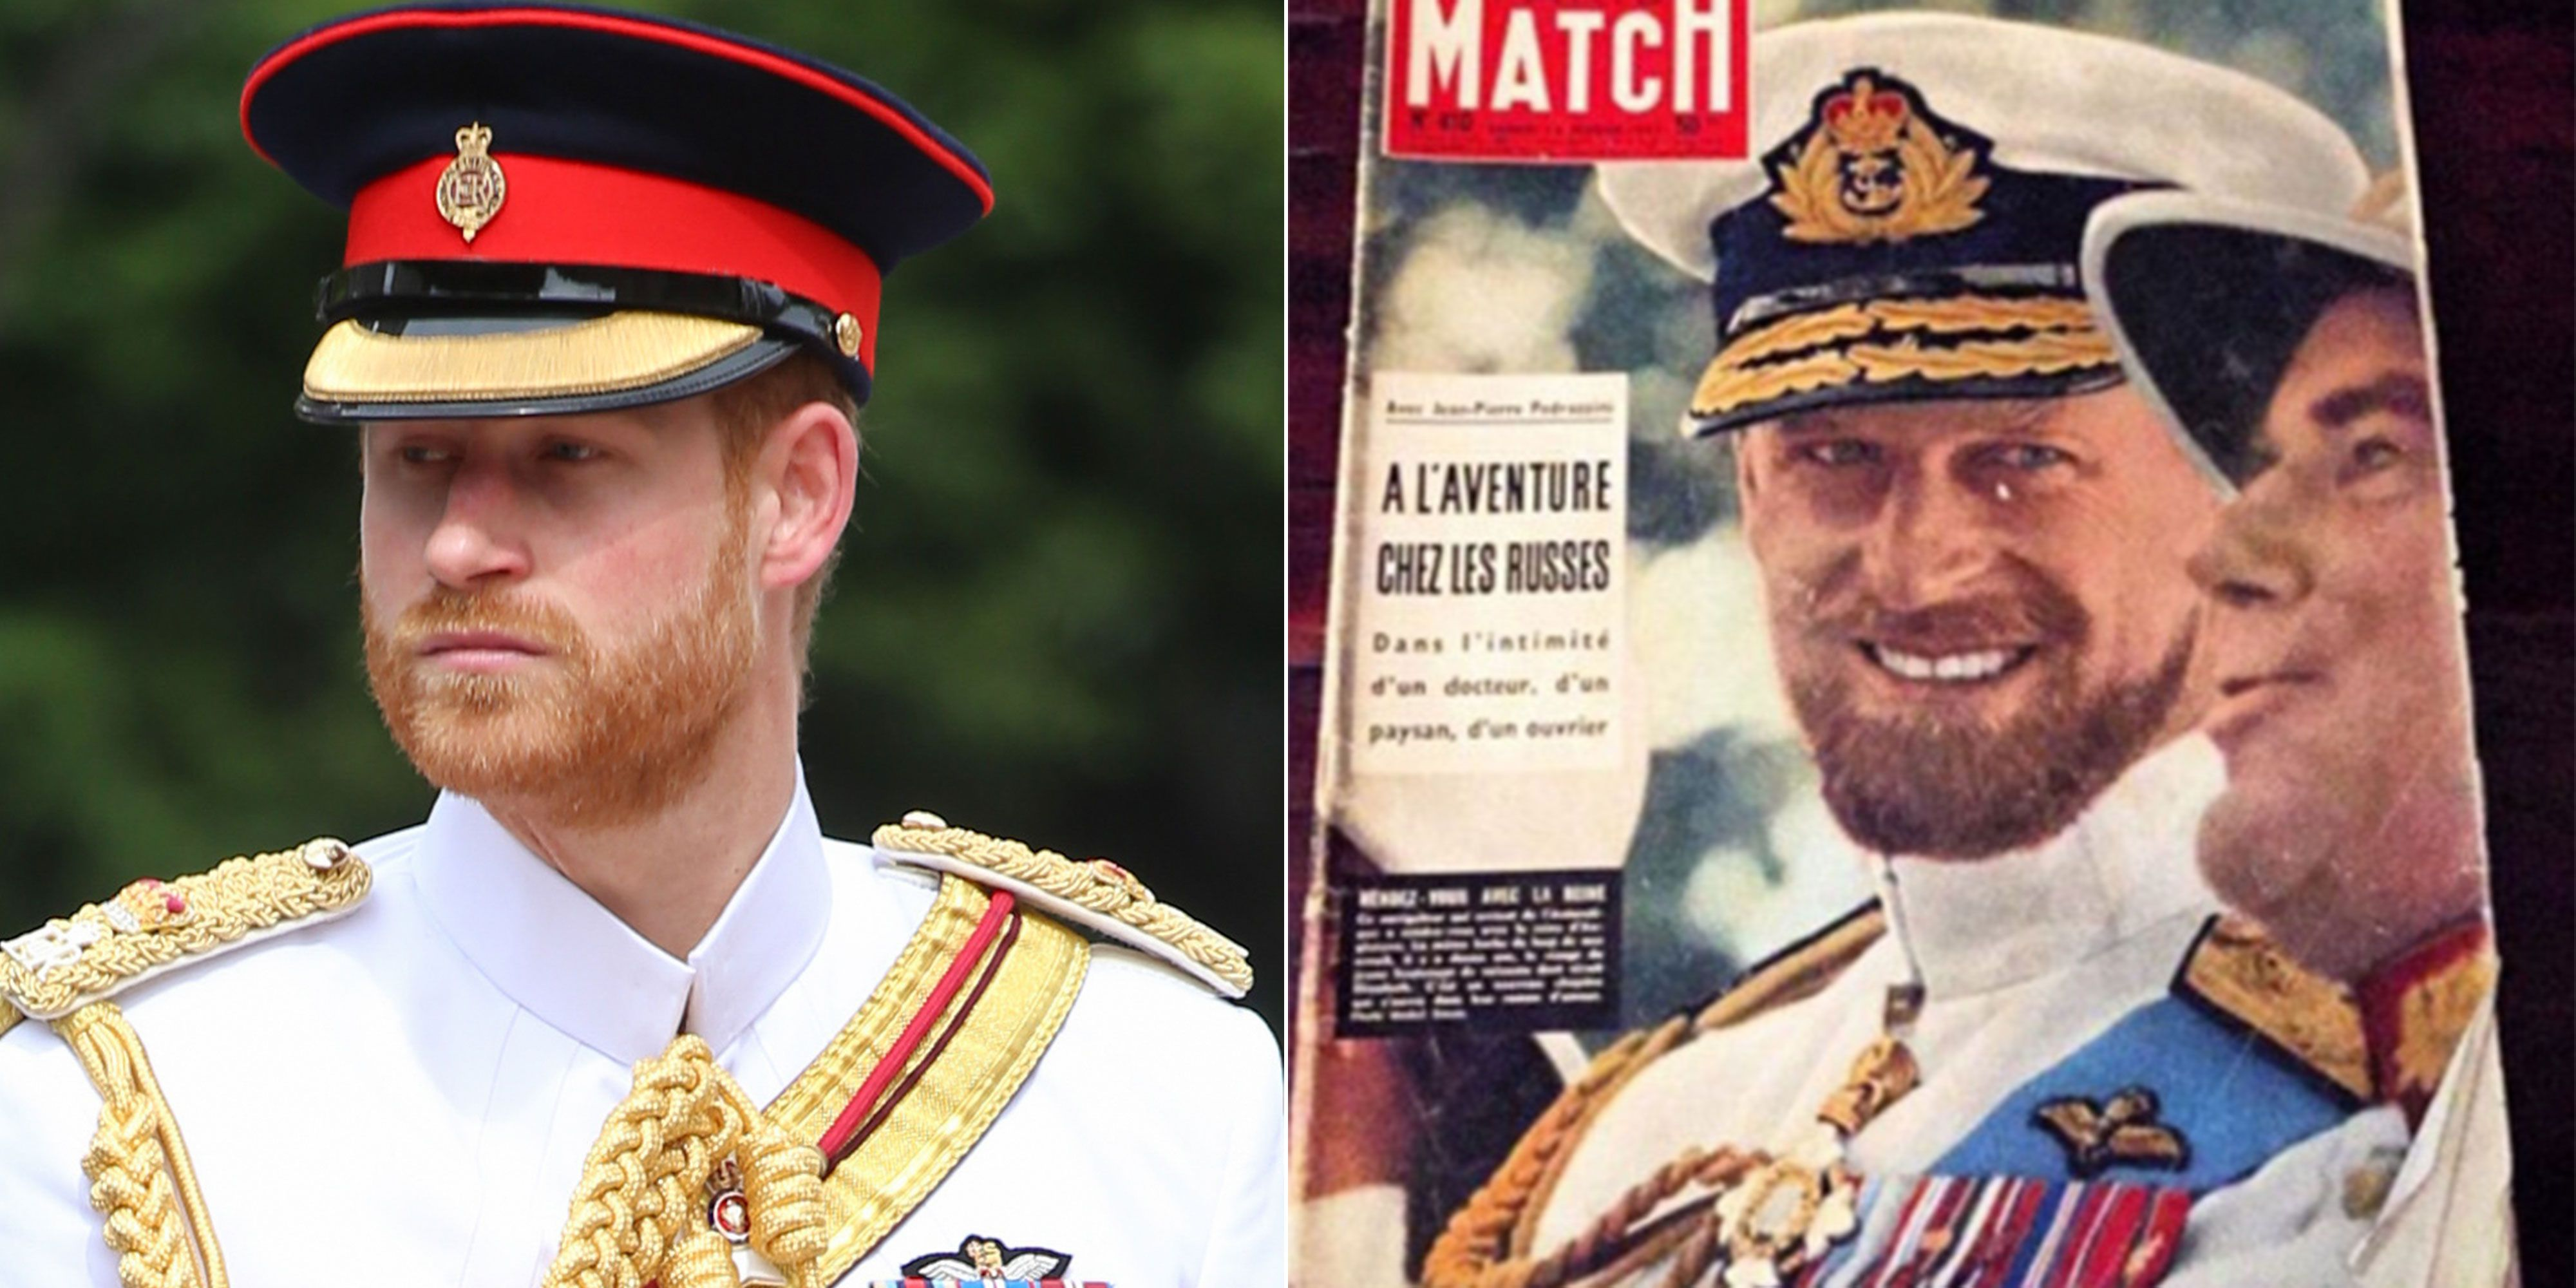 Royal fans think Prince Harry looks just like Prince Philip on Australian tour forecasting